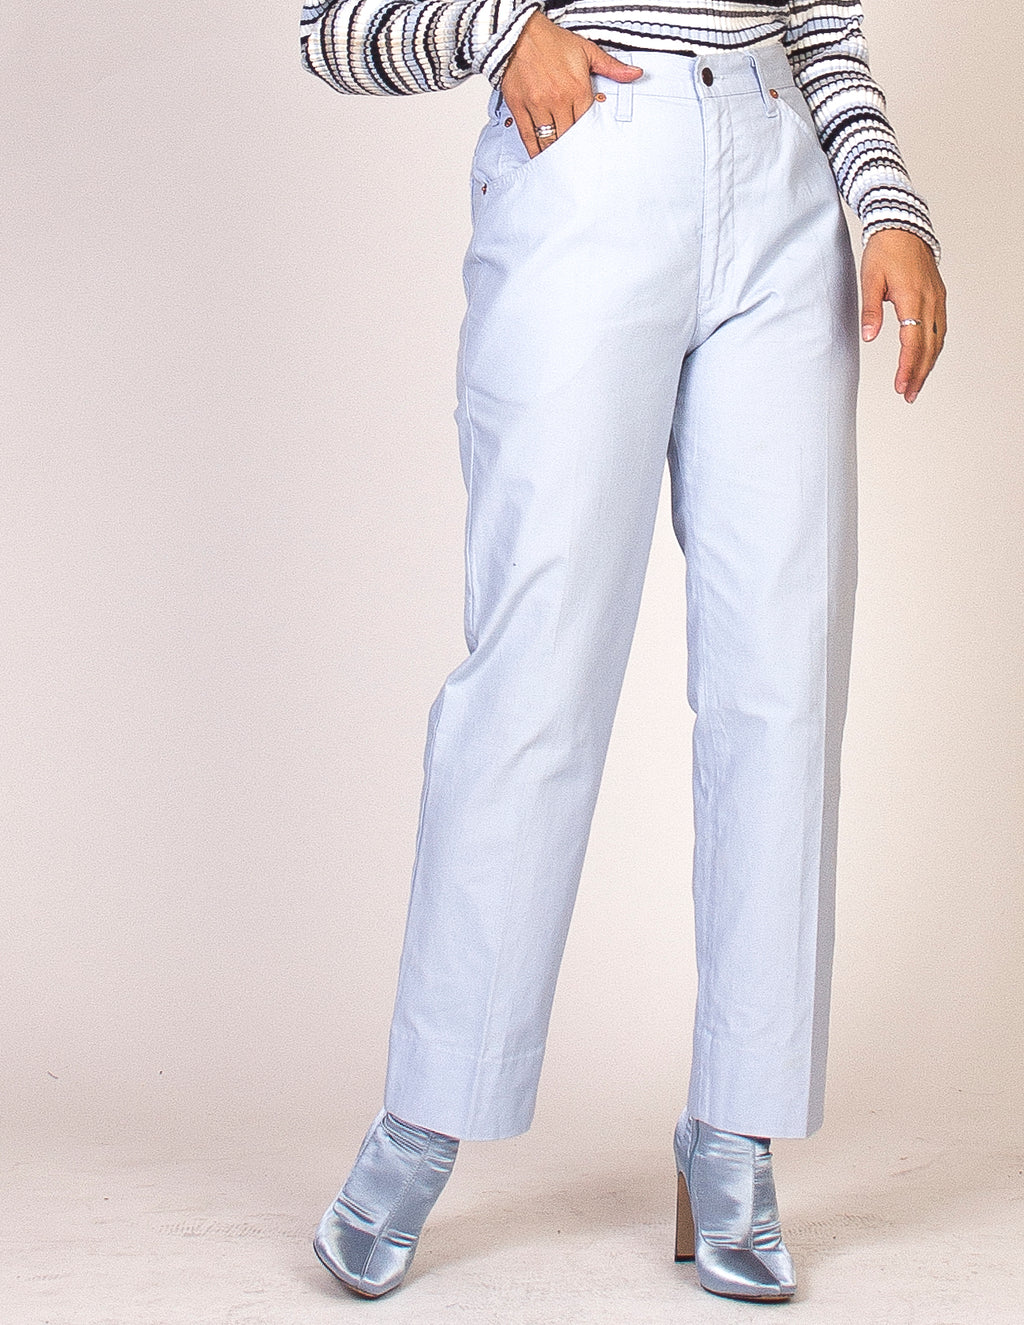 LEVI'S PALE BLUE HIGH WAIST TROUSERS